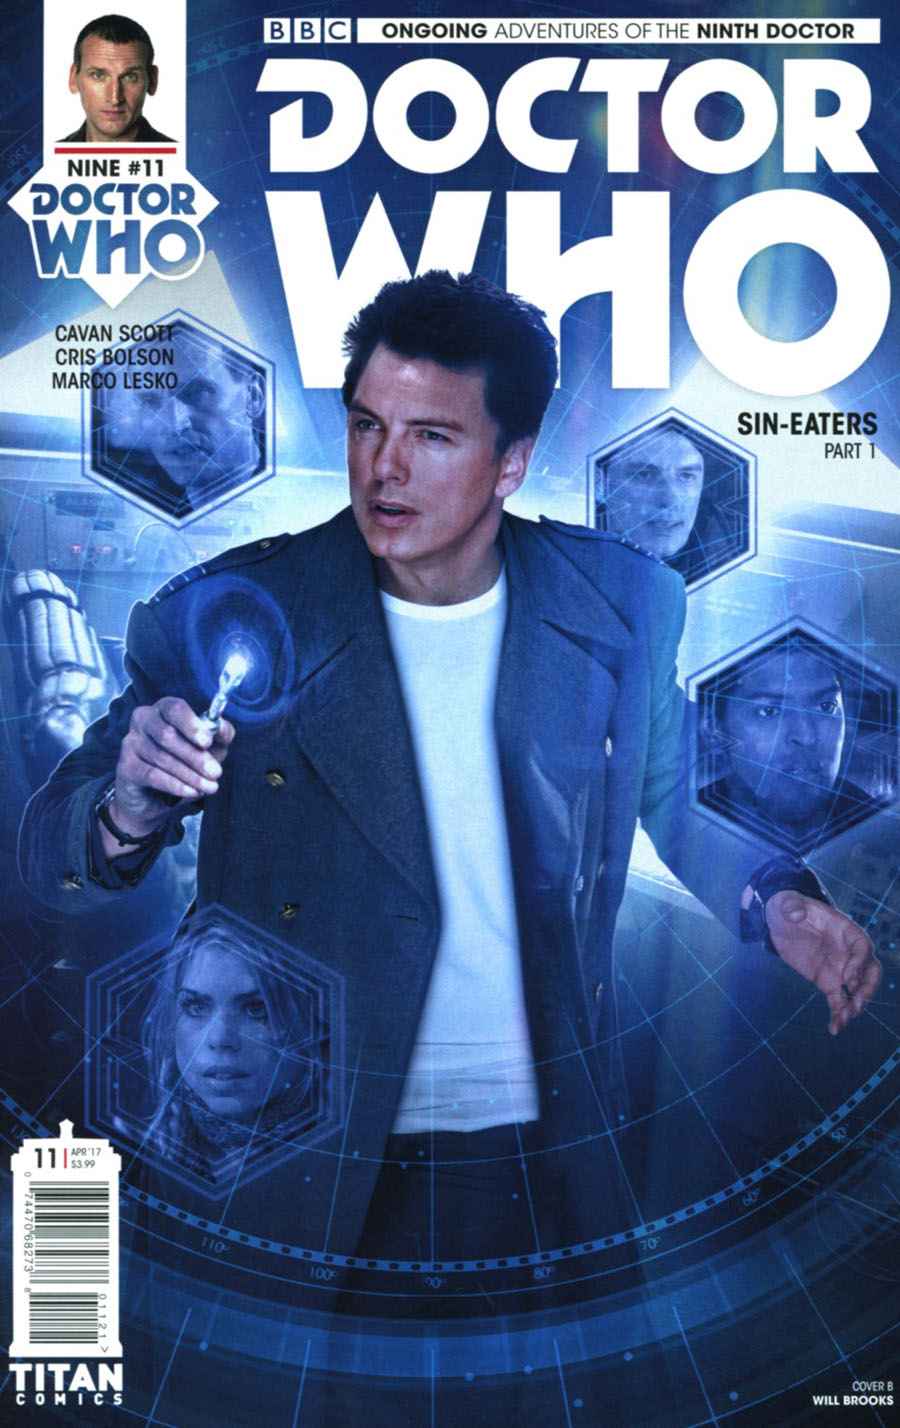 Doctor Who 9th Doctor Vol 2 #11 Cover B Variant Photo Cover